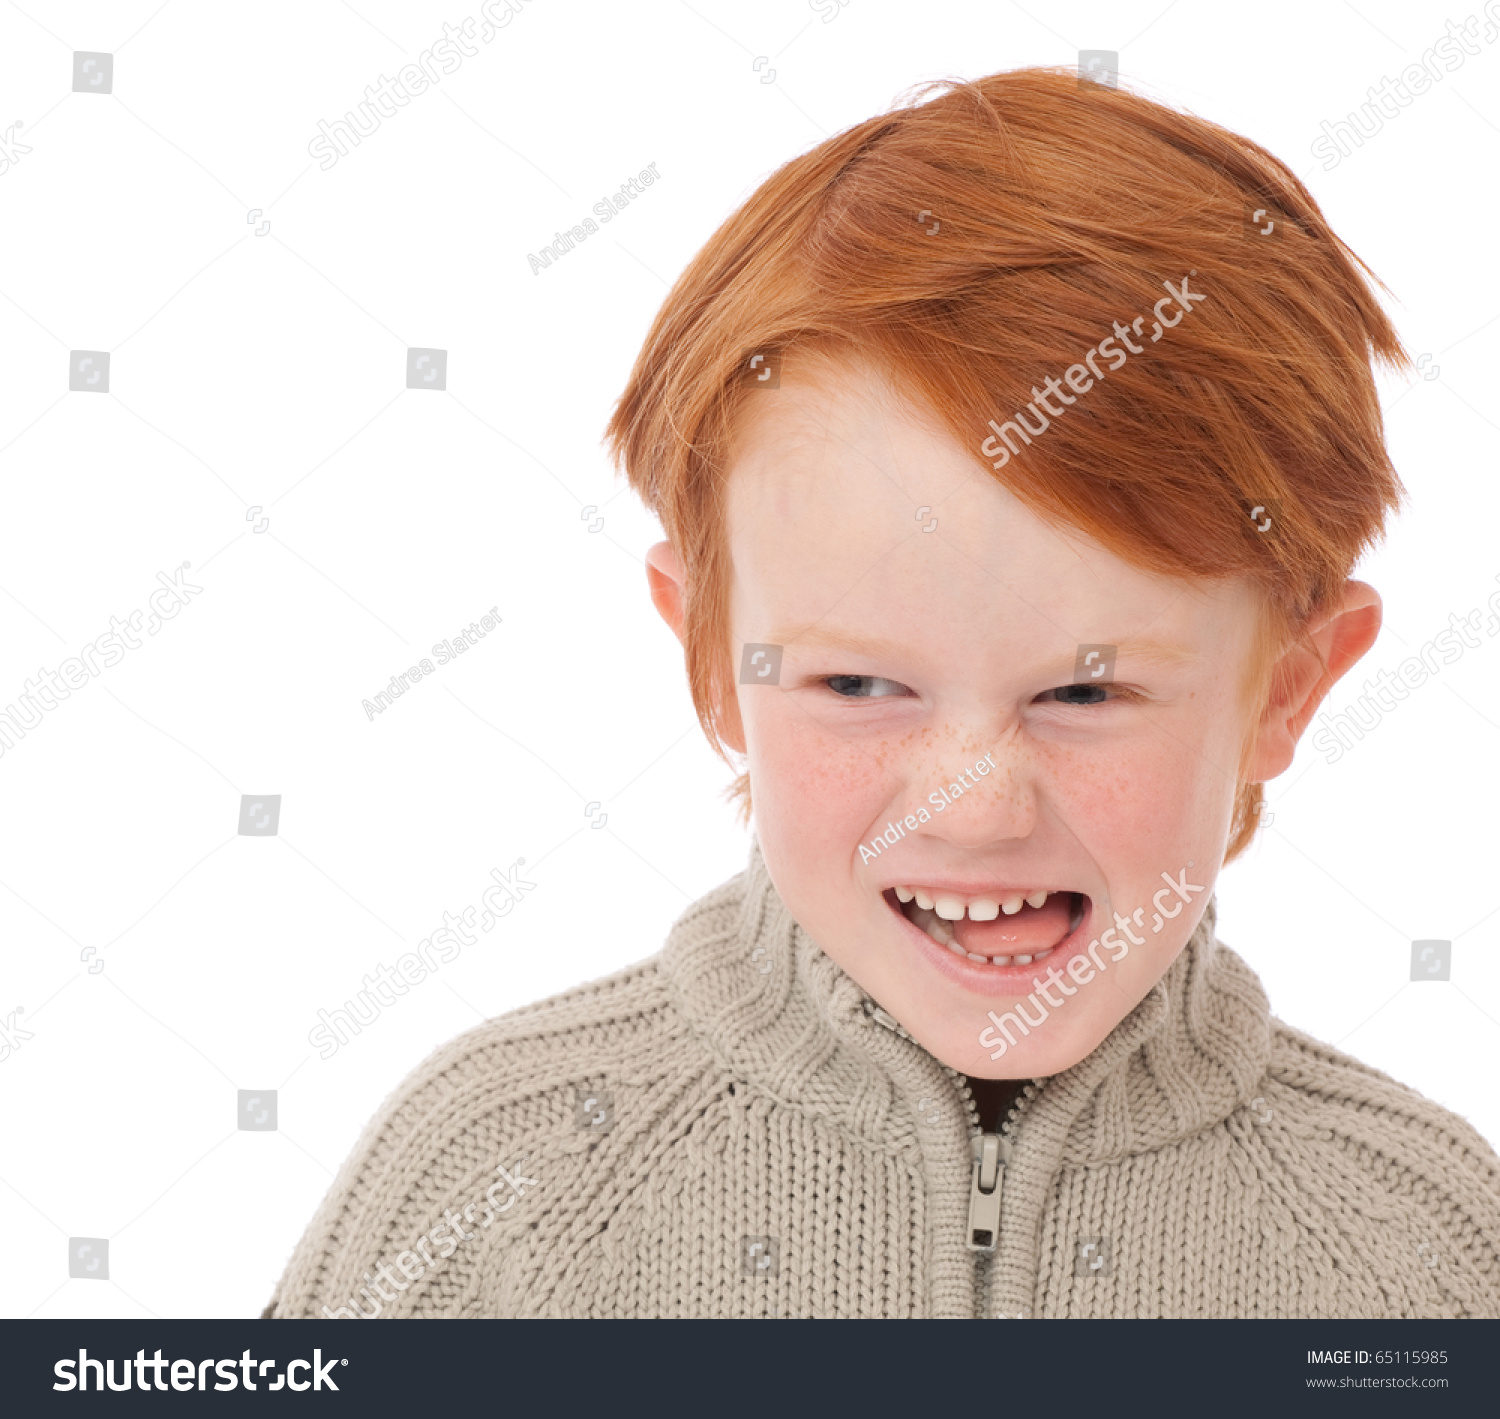 Ginger Red Hair Haired Boy Funny Stock Photo 65115985